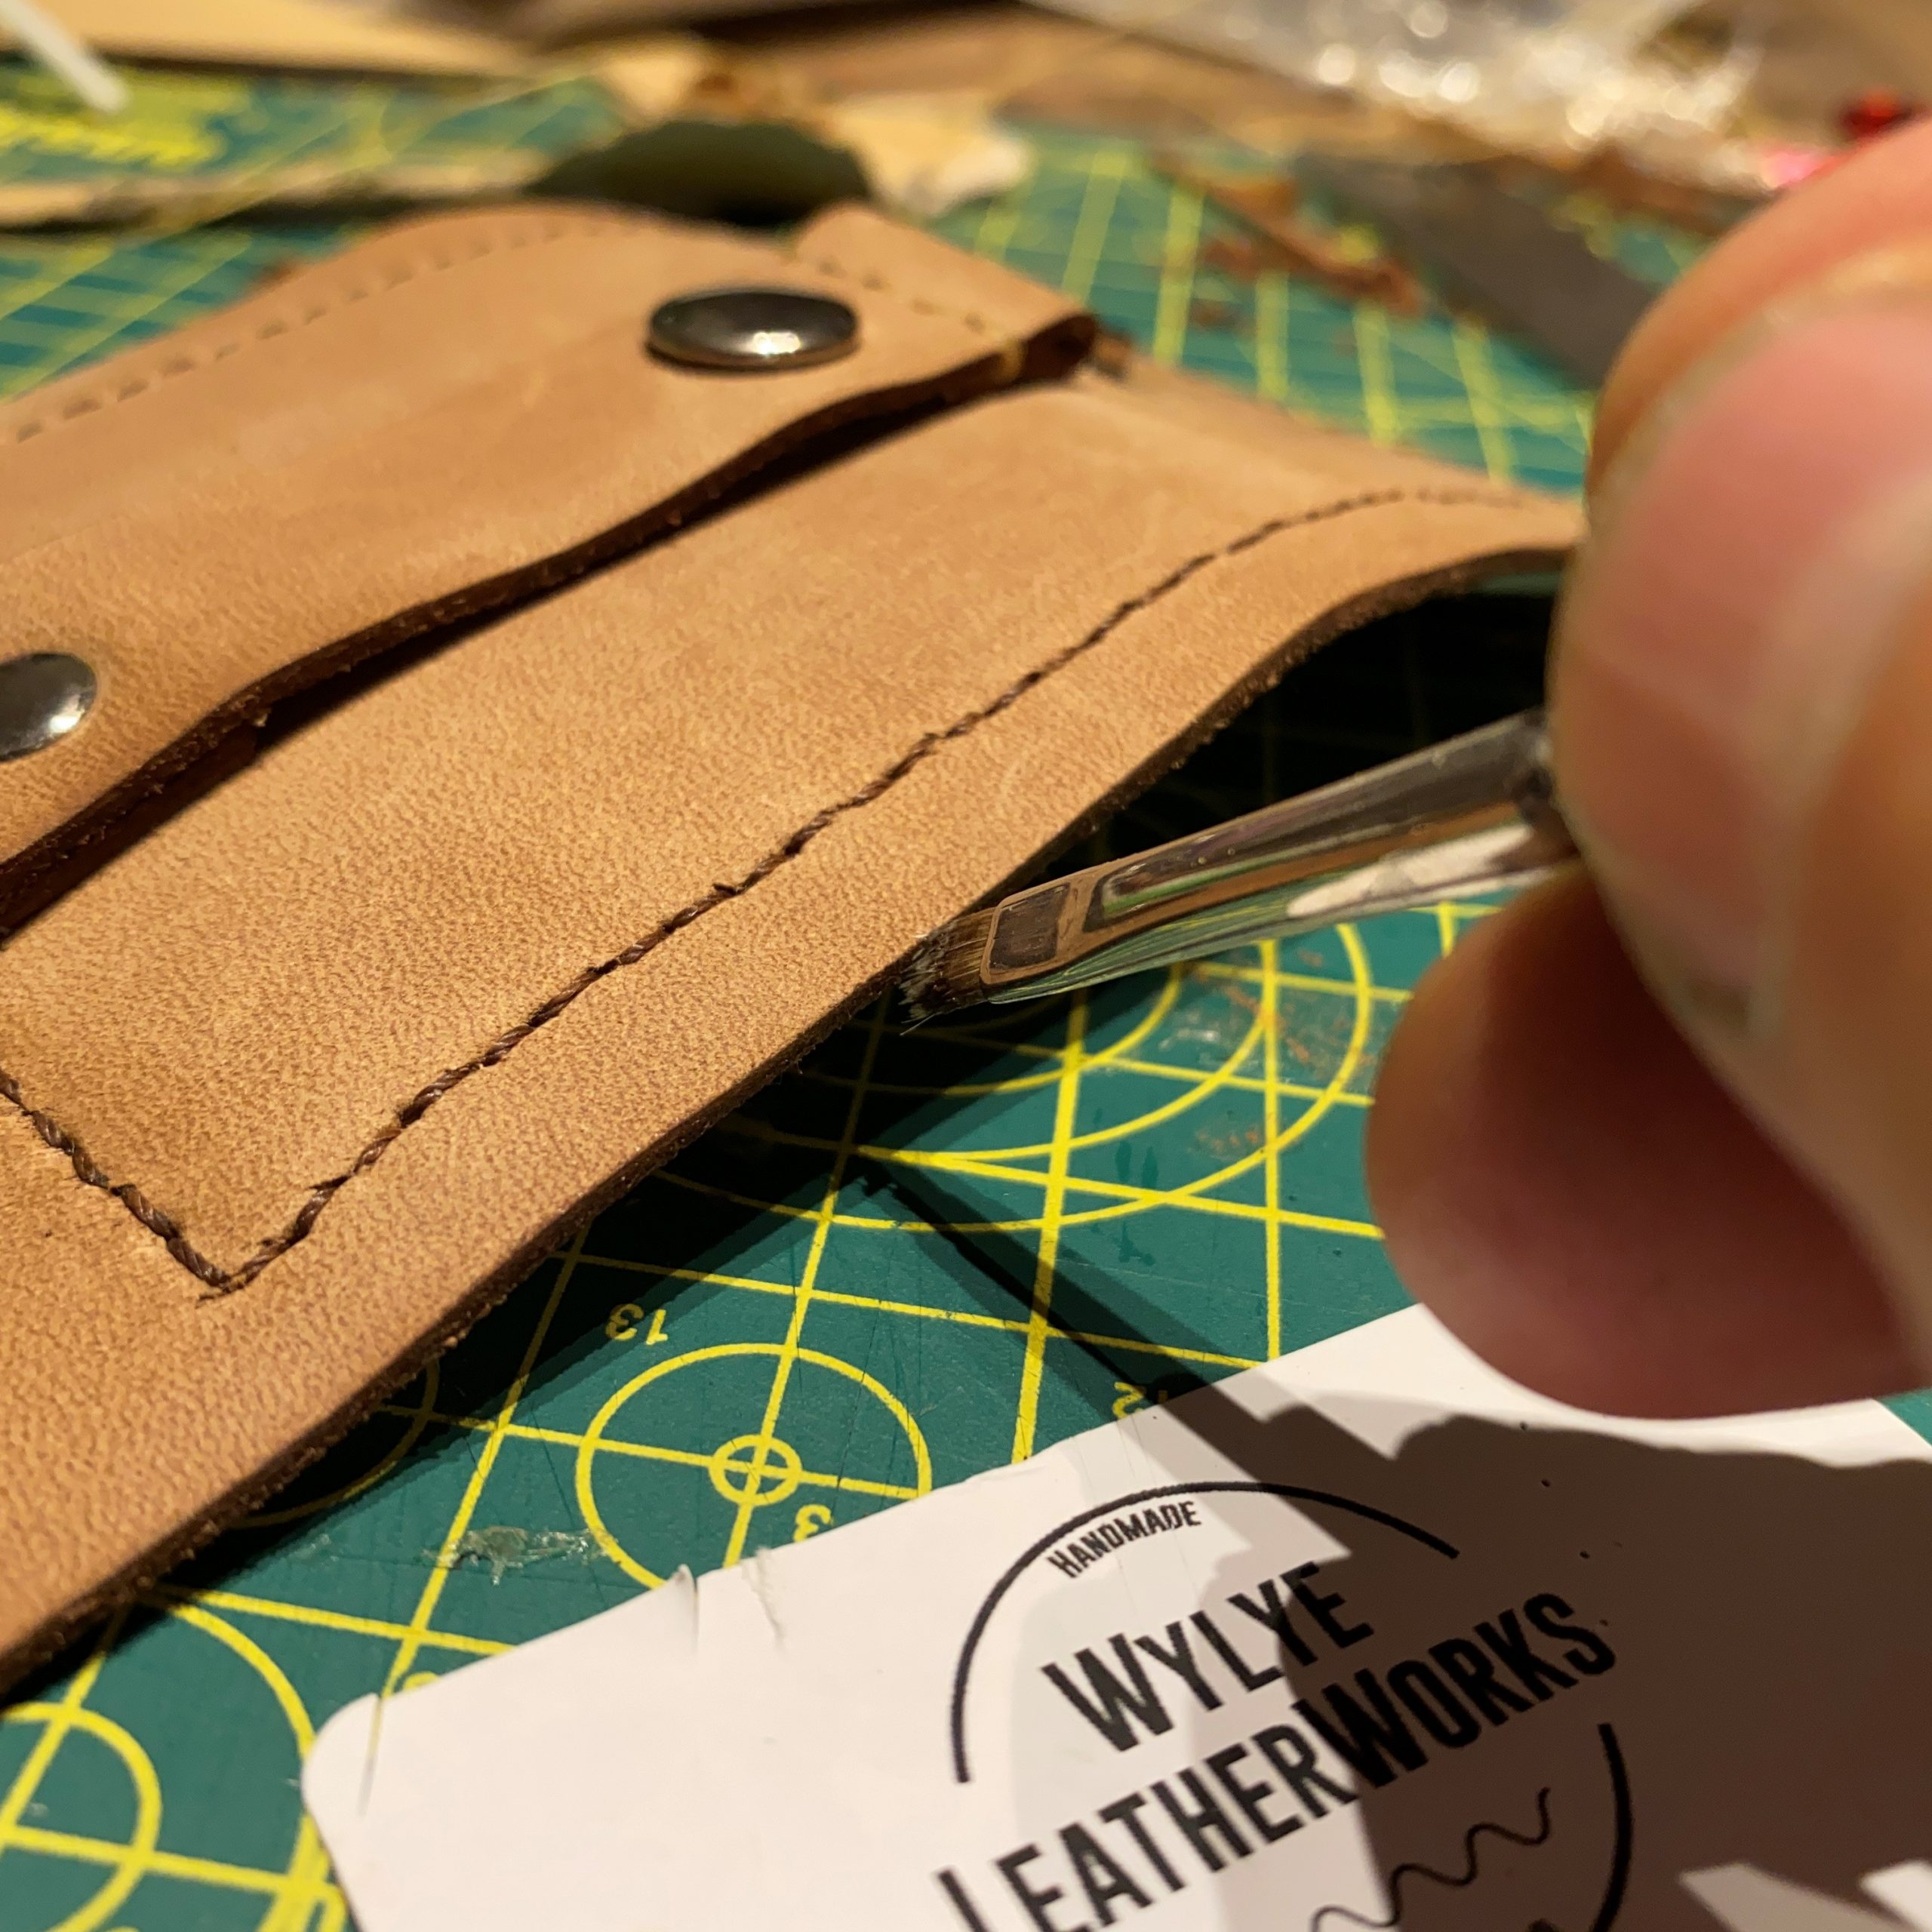 Working hard on our new limited edition fly patch / wallet